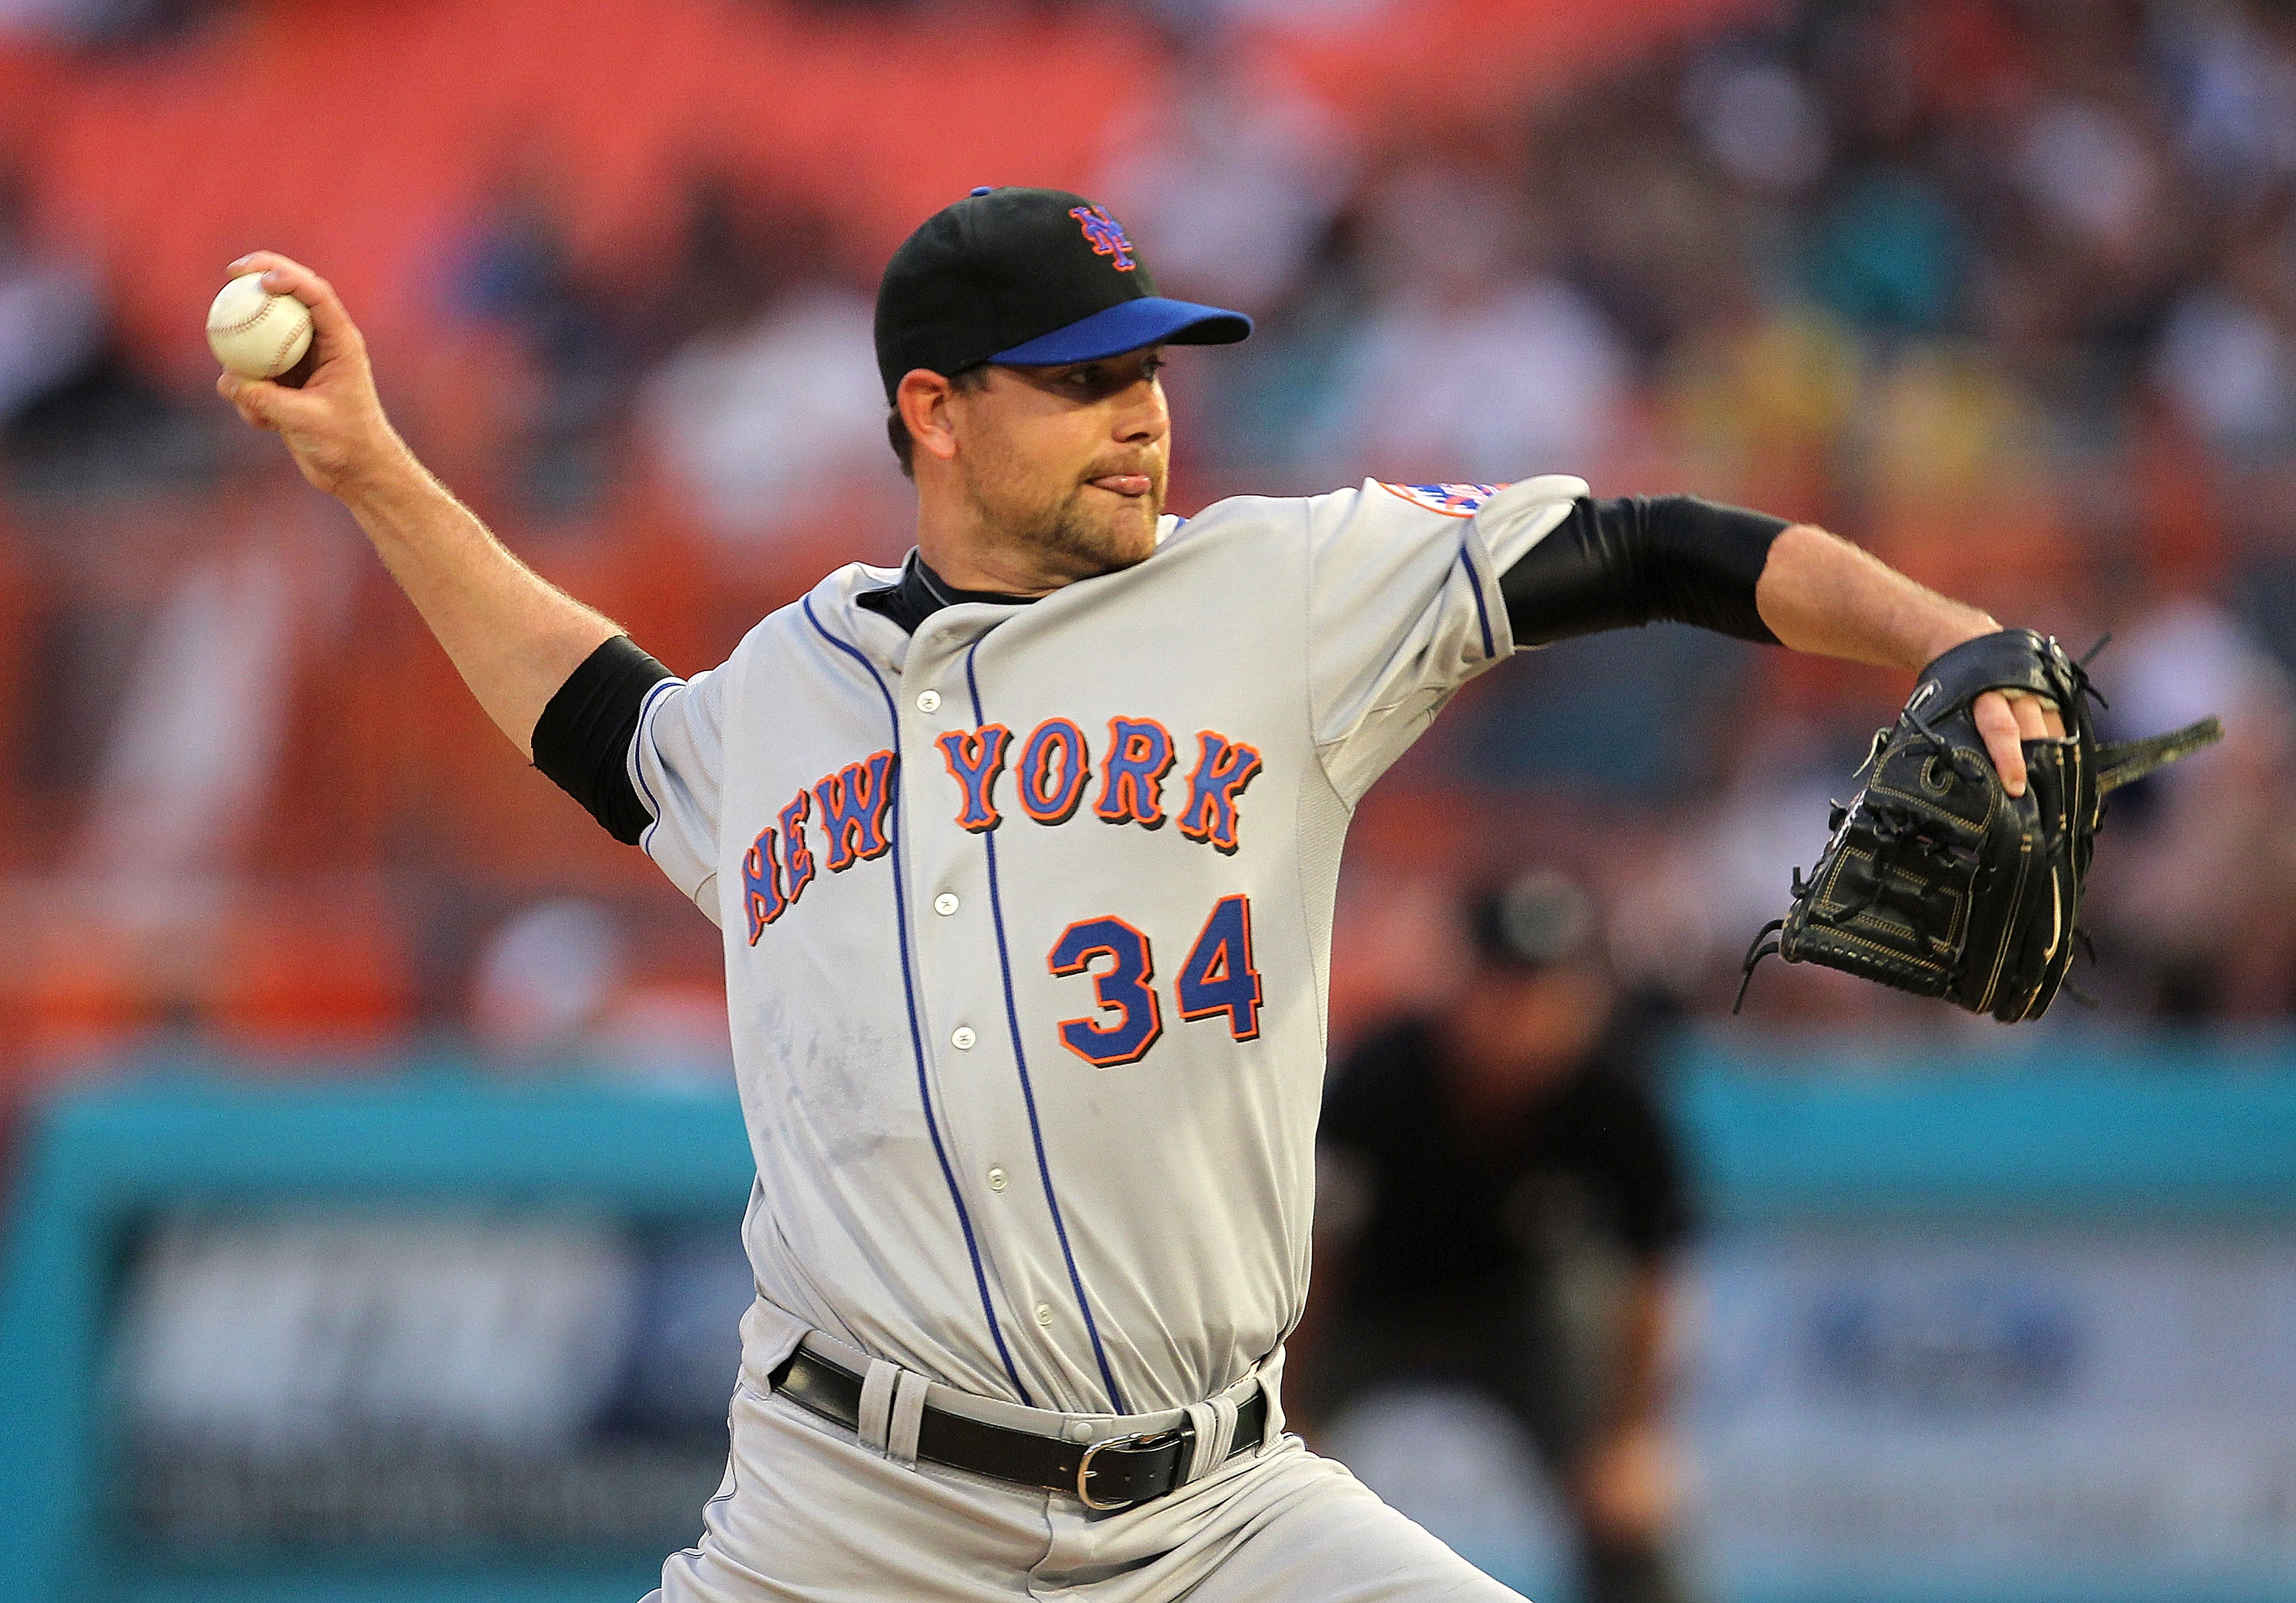 MIAMI GARDENS, FL - APRIL 01: Mike Pelfrey #34 of the New York Mets pitches during opening day against the Florida Marlins at Sun Life Stadium on April 1, 2011 in Miami Gardens, Florida.  (Photo by Mike Ehrmann/Getty Images)